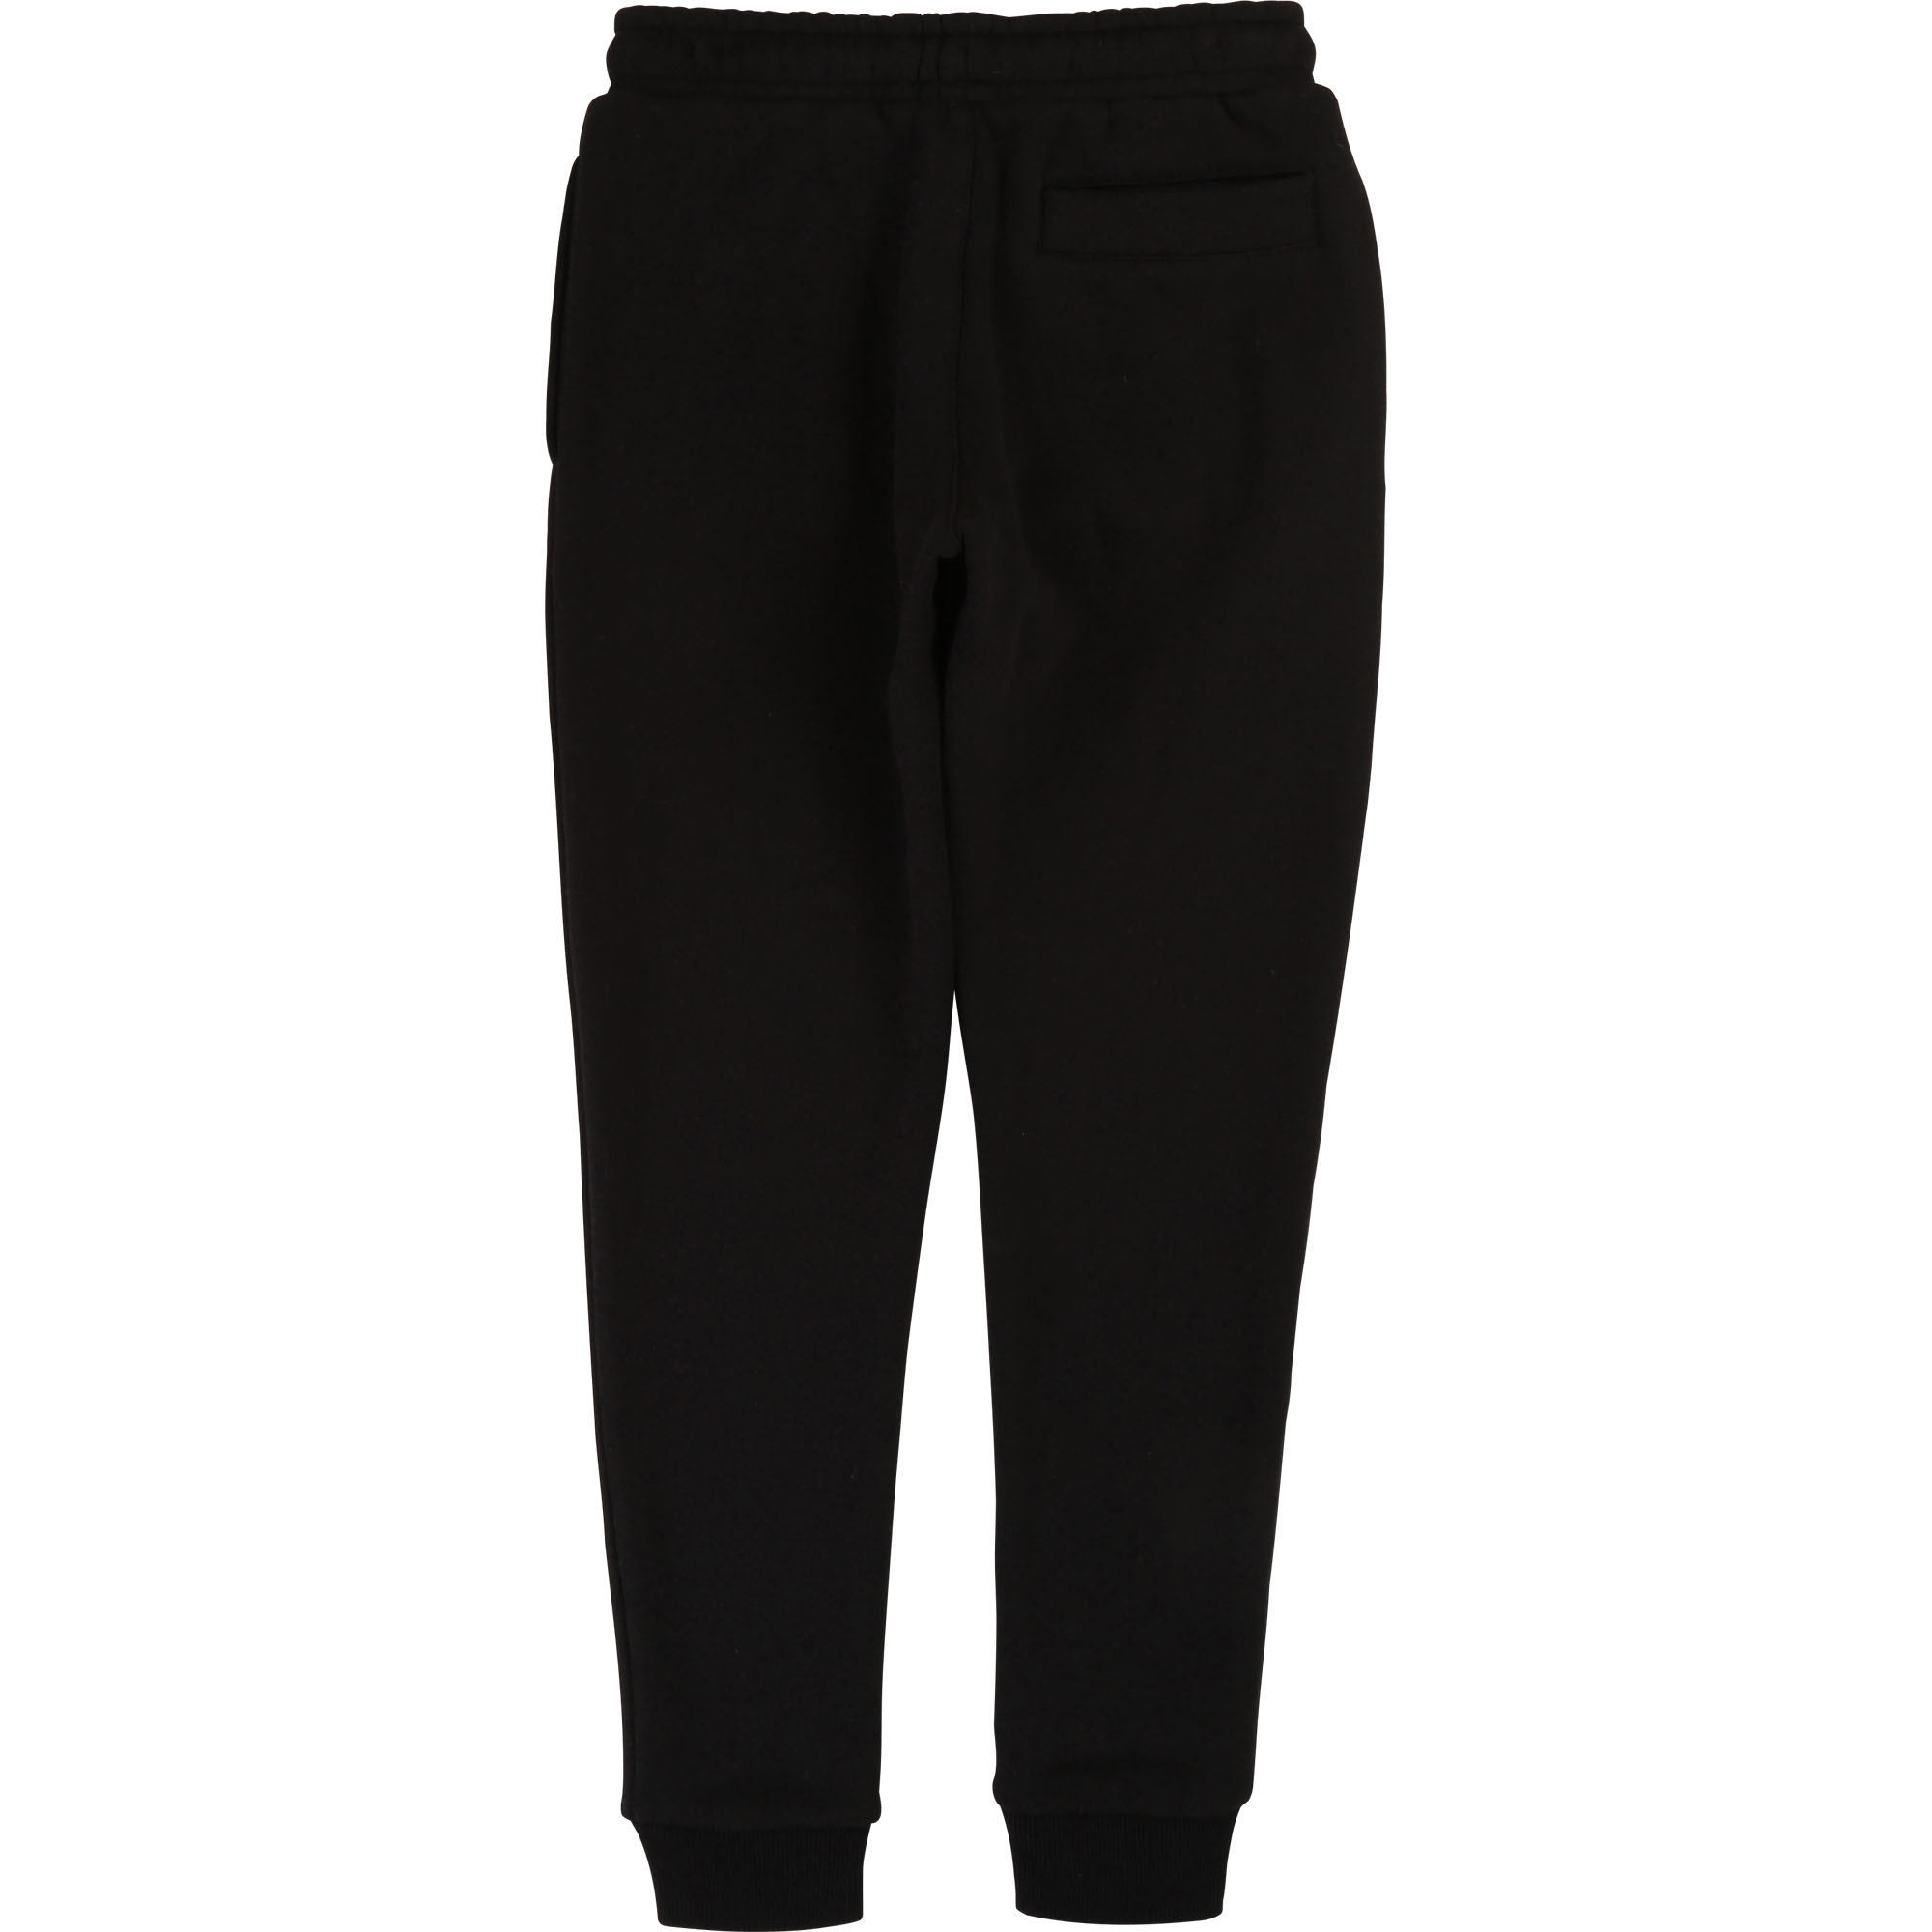 Fleece jogging bottoms KARL LAGERFELD KIDS for BOY